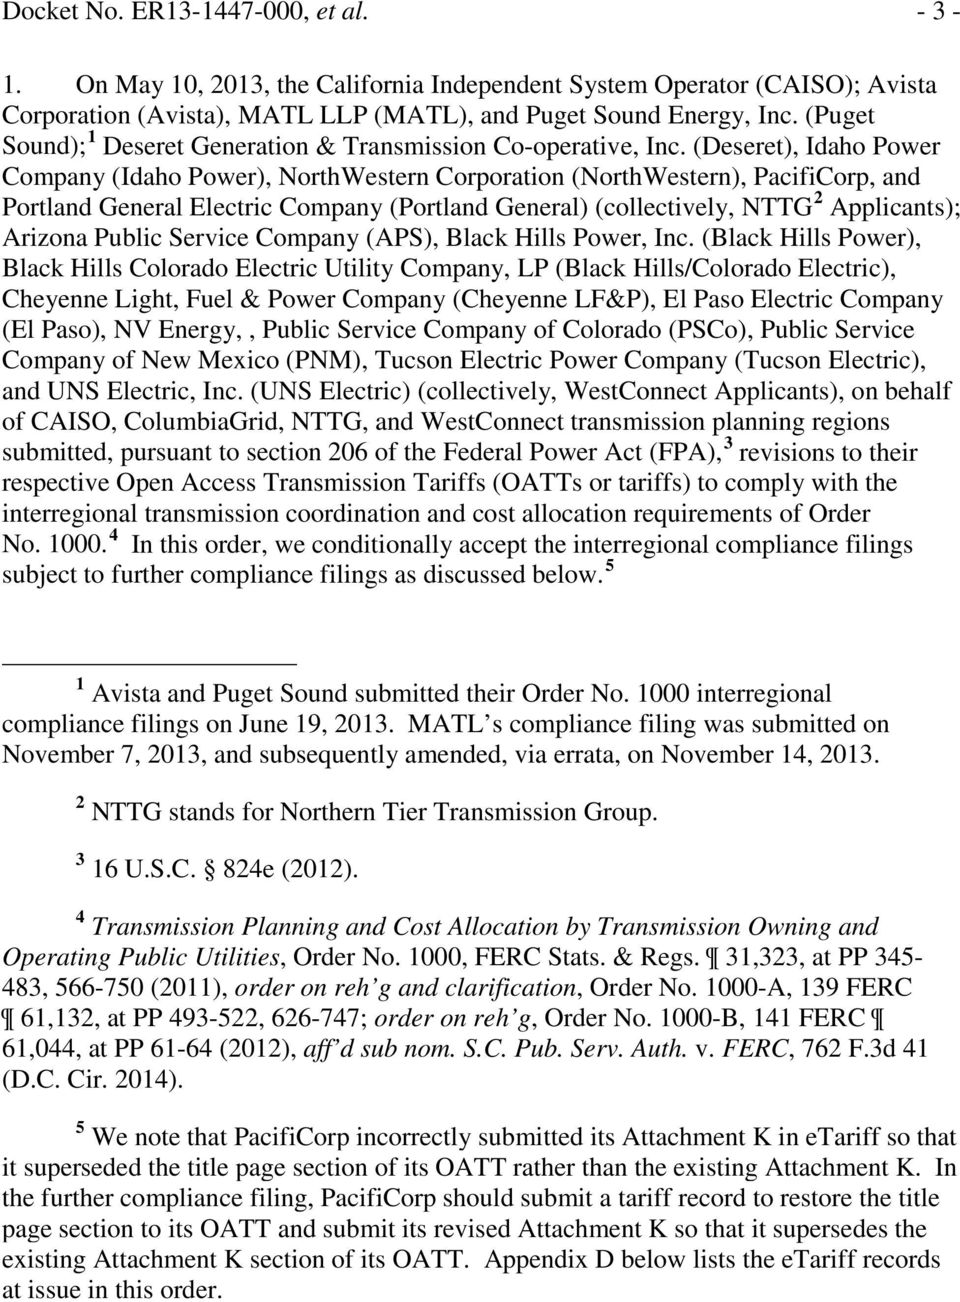 (Deseret), Idaho Power Company (Idaho Power), NorthWestern Corporation (NorthWestern), PacifiCorp, and Portland General Electric Company (Portland General) (collectively, NTTG 2 Applicants); Arizona